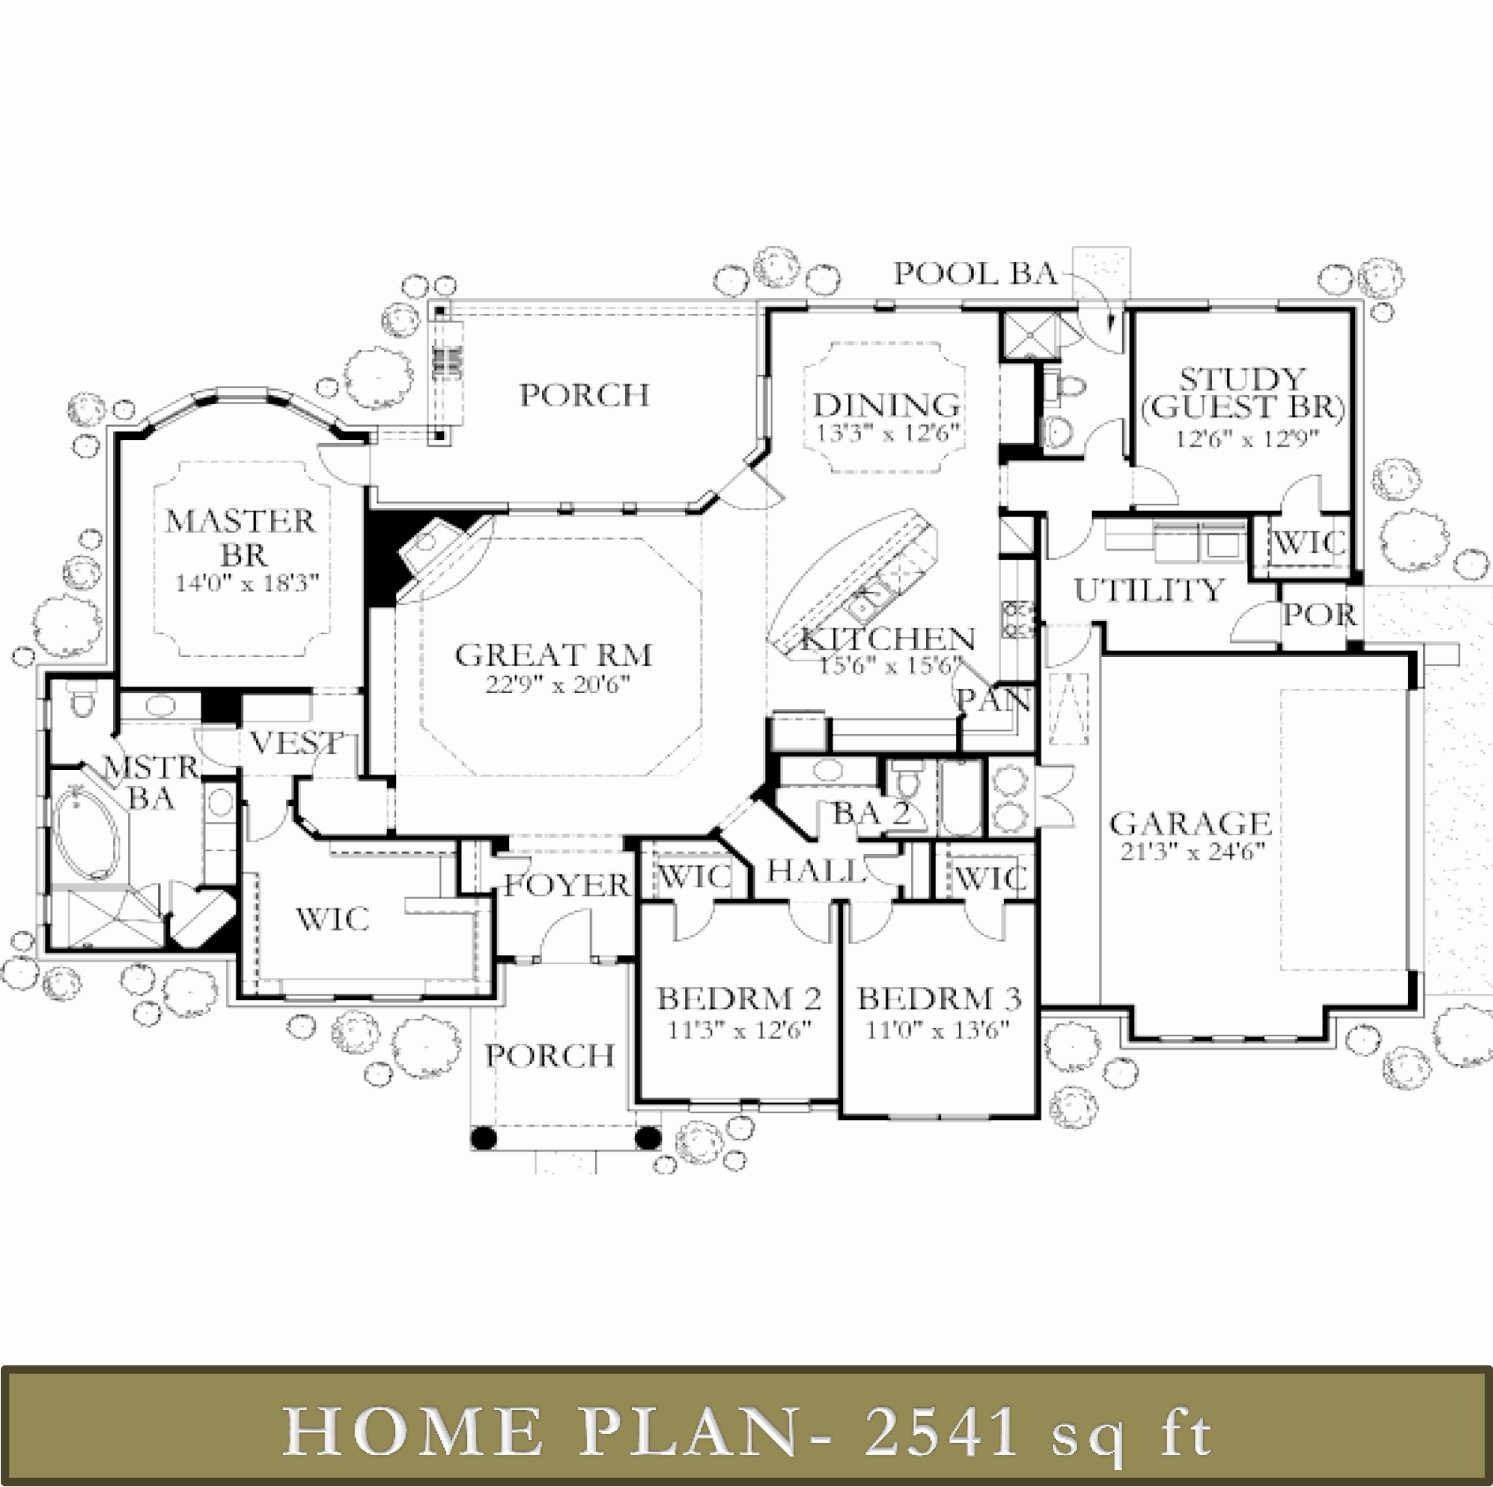 2500 3000 sq ft homes glazier homes for 2500 to 3000 sq ft homes